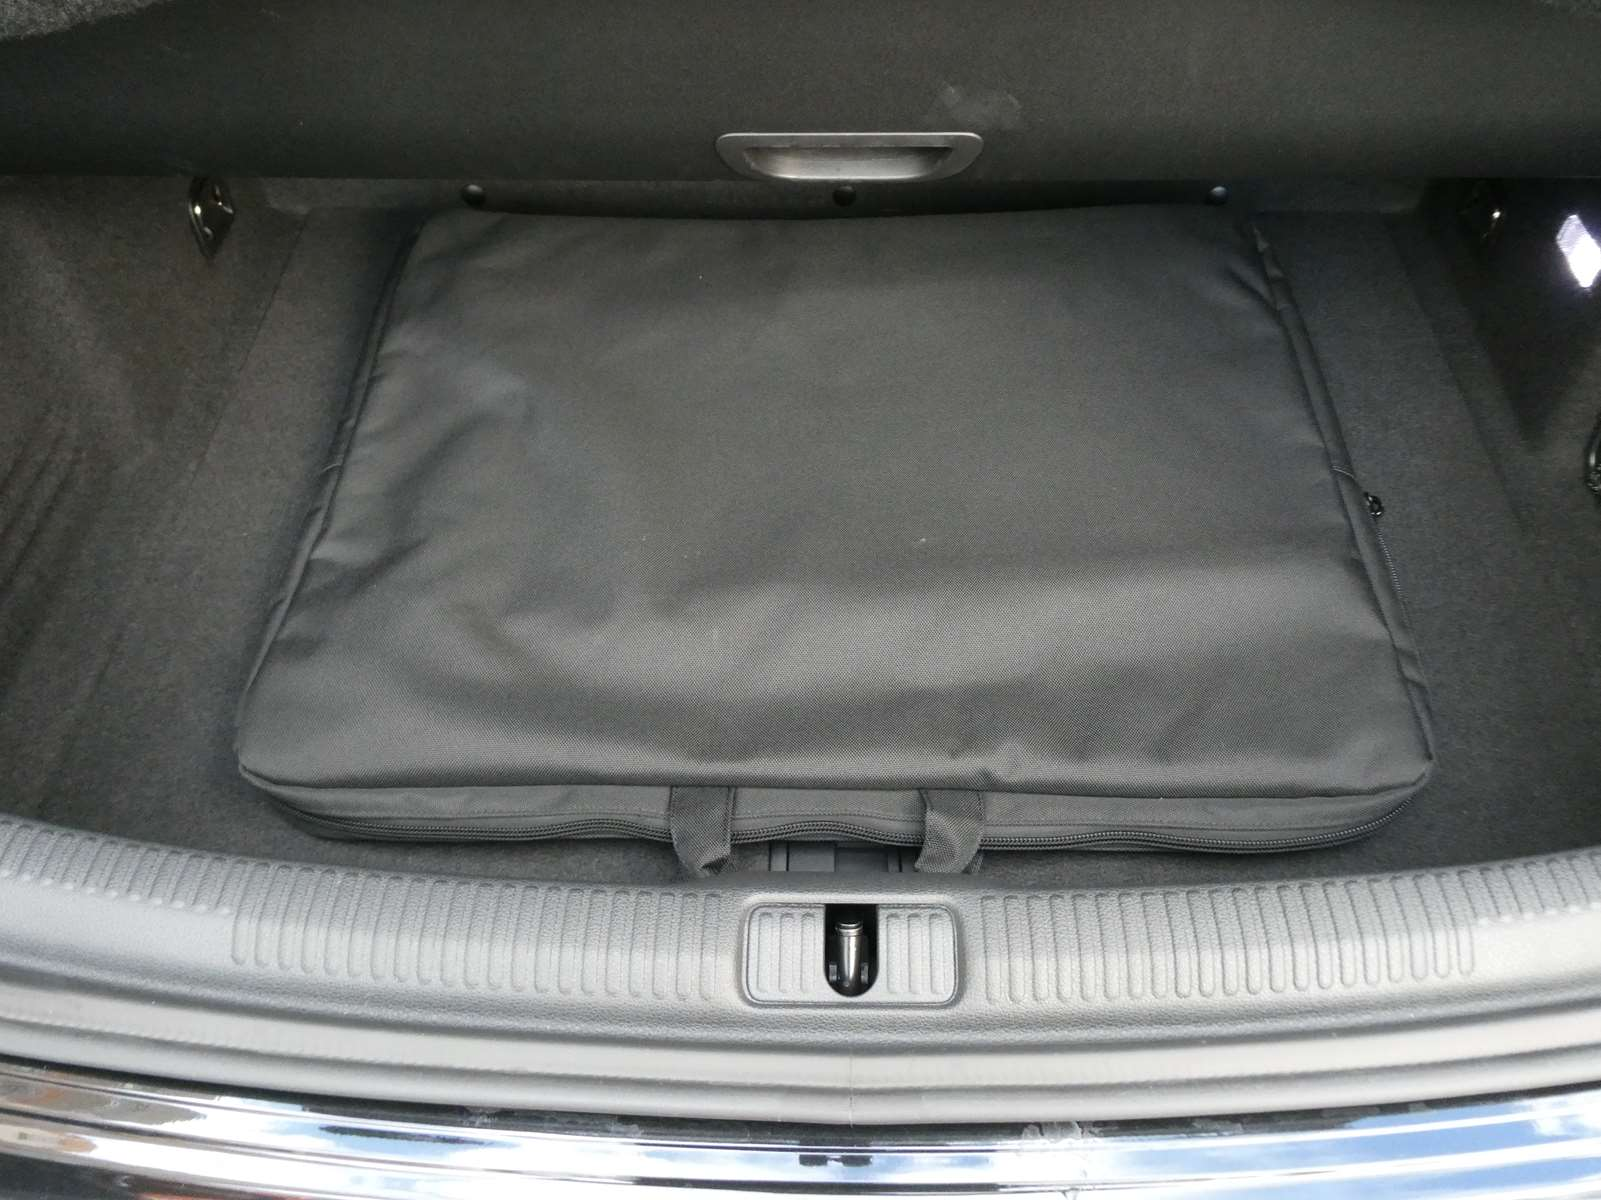 Audi A3 (2) cabriolet 35 TFSI 150 Design luxe S tronic 7 23